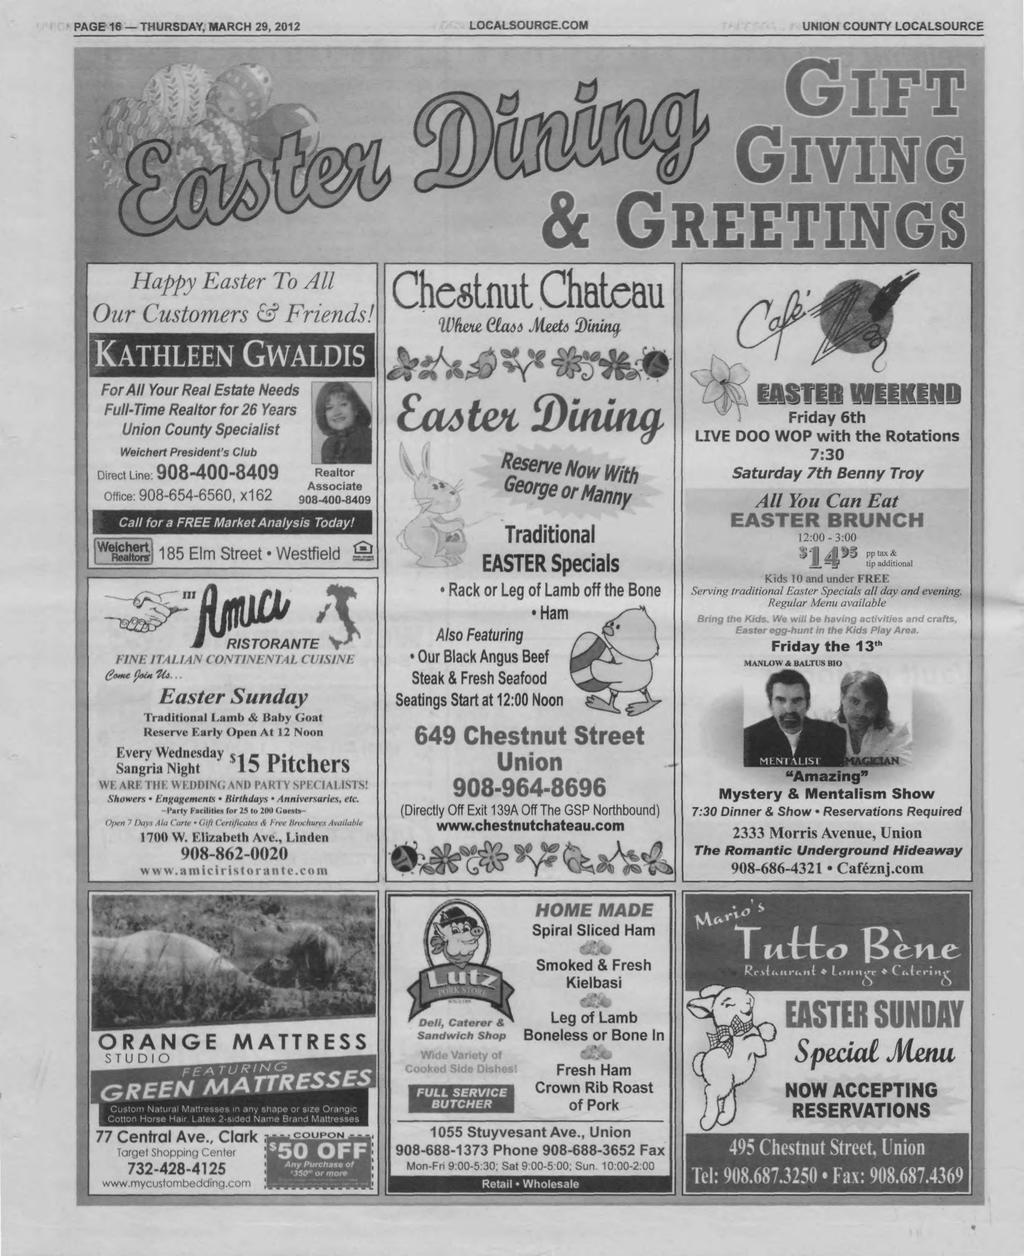 PAGE 16 THURSDAY, MARCH 29, 2012 LOCALSOURCE.COM COUNTY LOCALSOURCE GIF GlVIN & GREETING Happy Easter To All Our Customers & Friends!